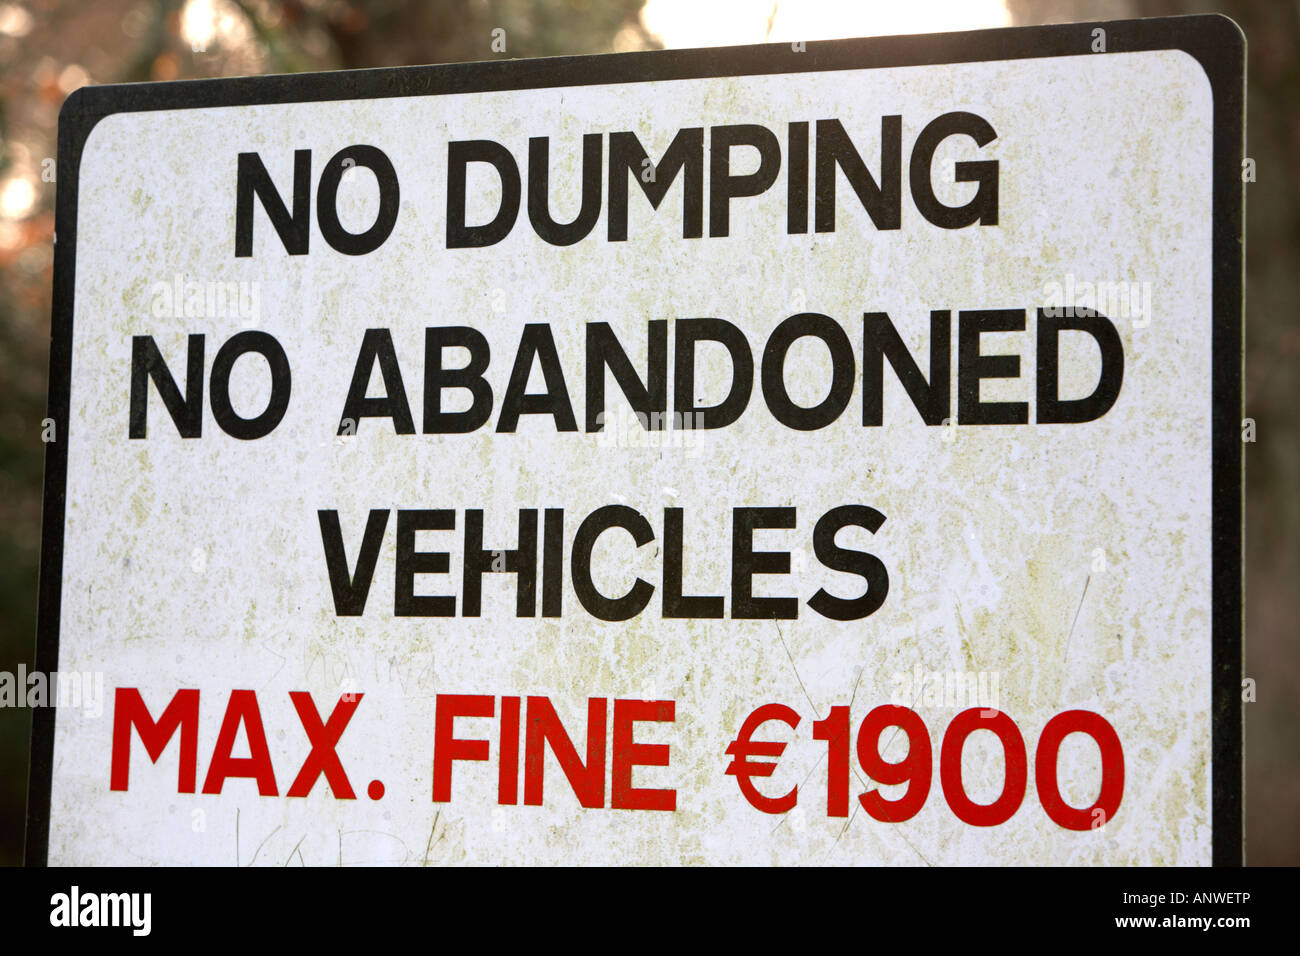 no dumping no abandoned vehicles max fine 1900 euro - Stock Image